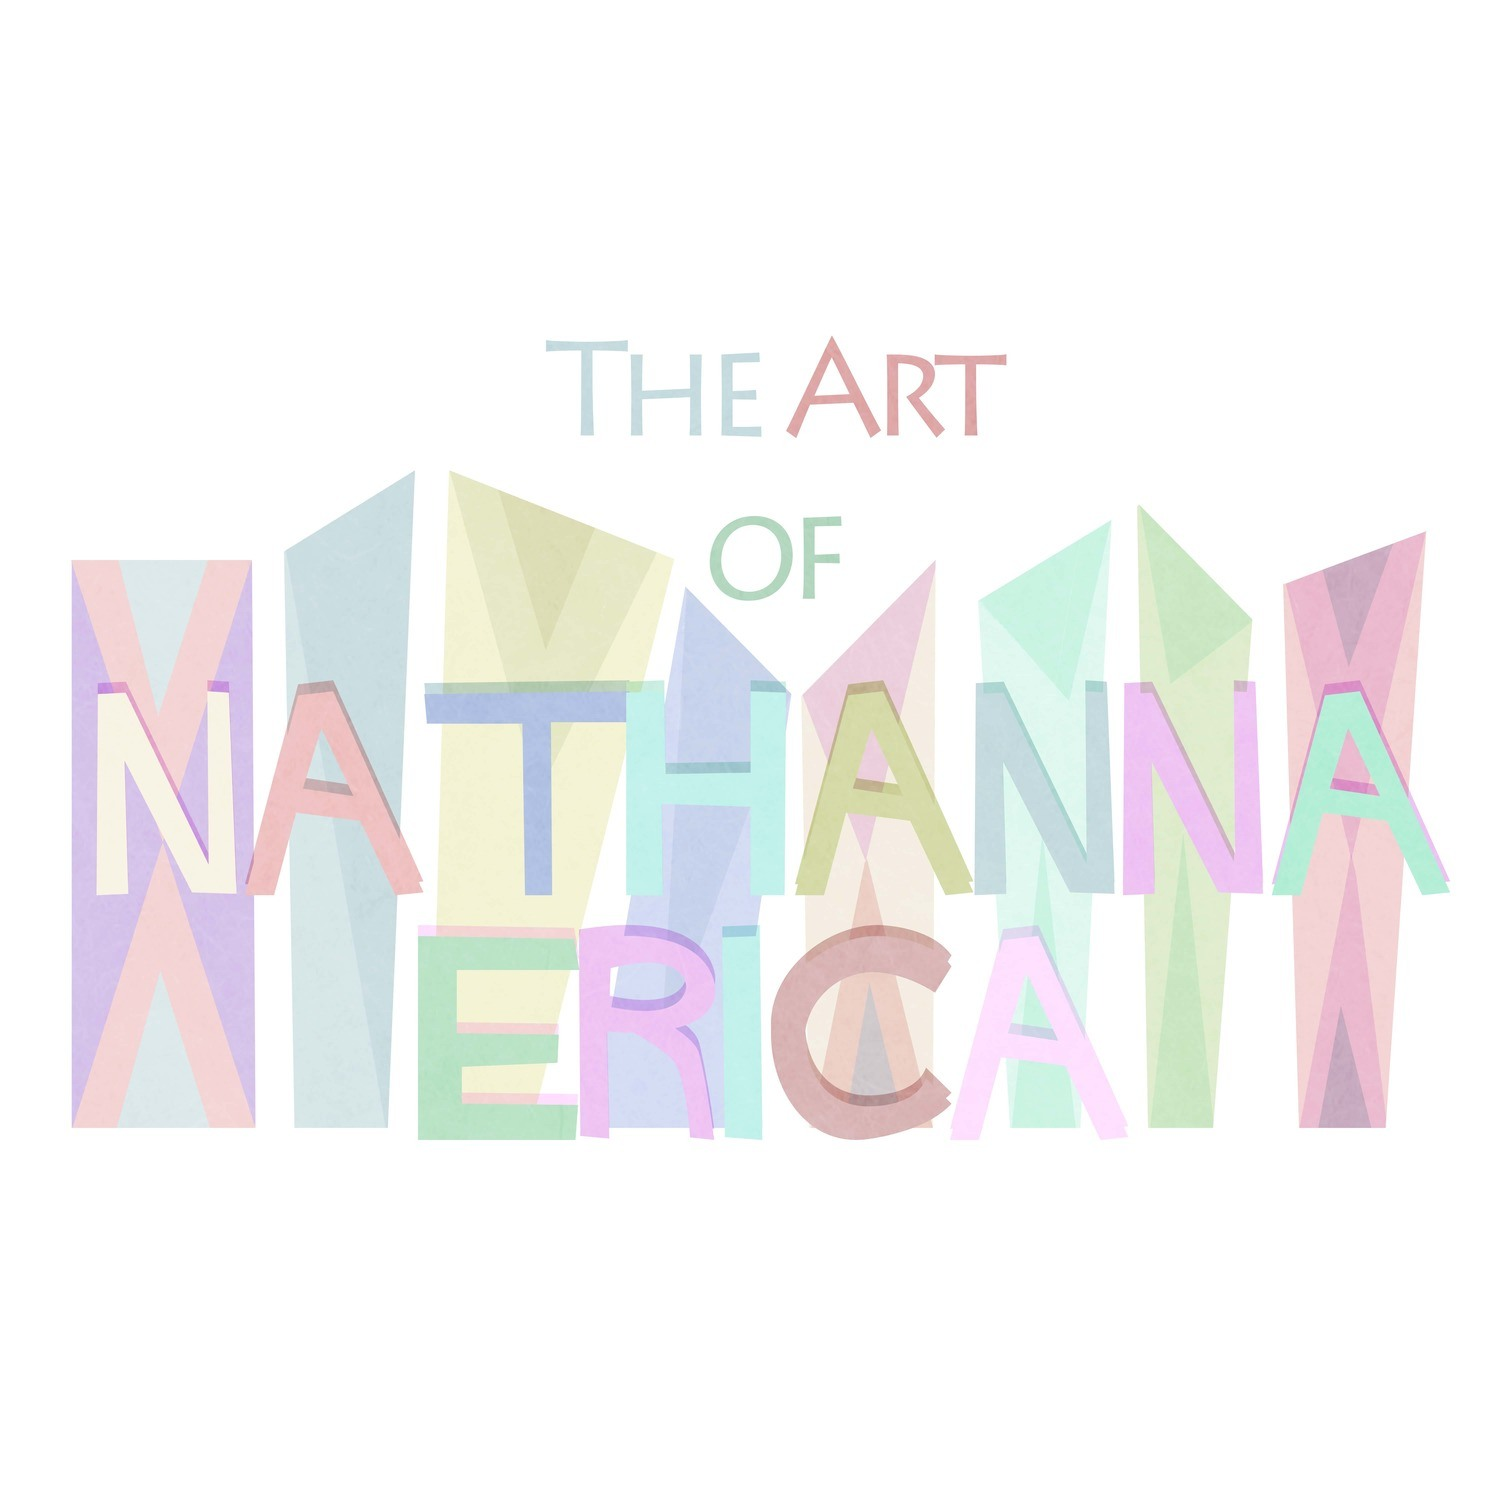 The Art of Nathanna Erica